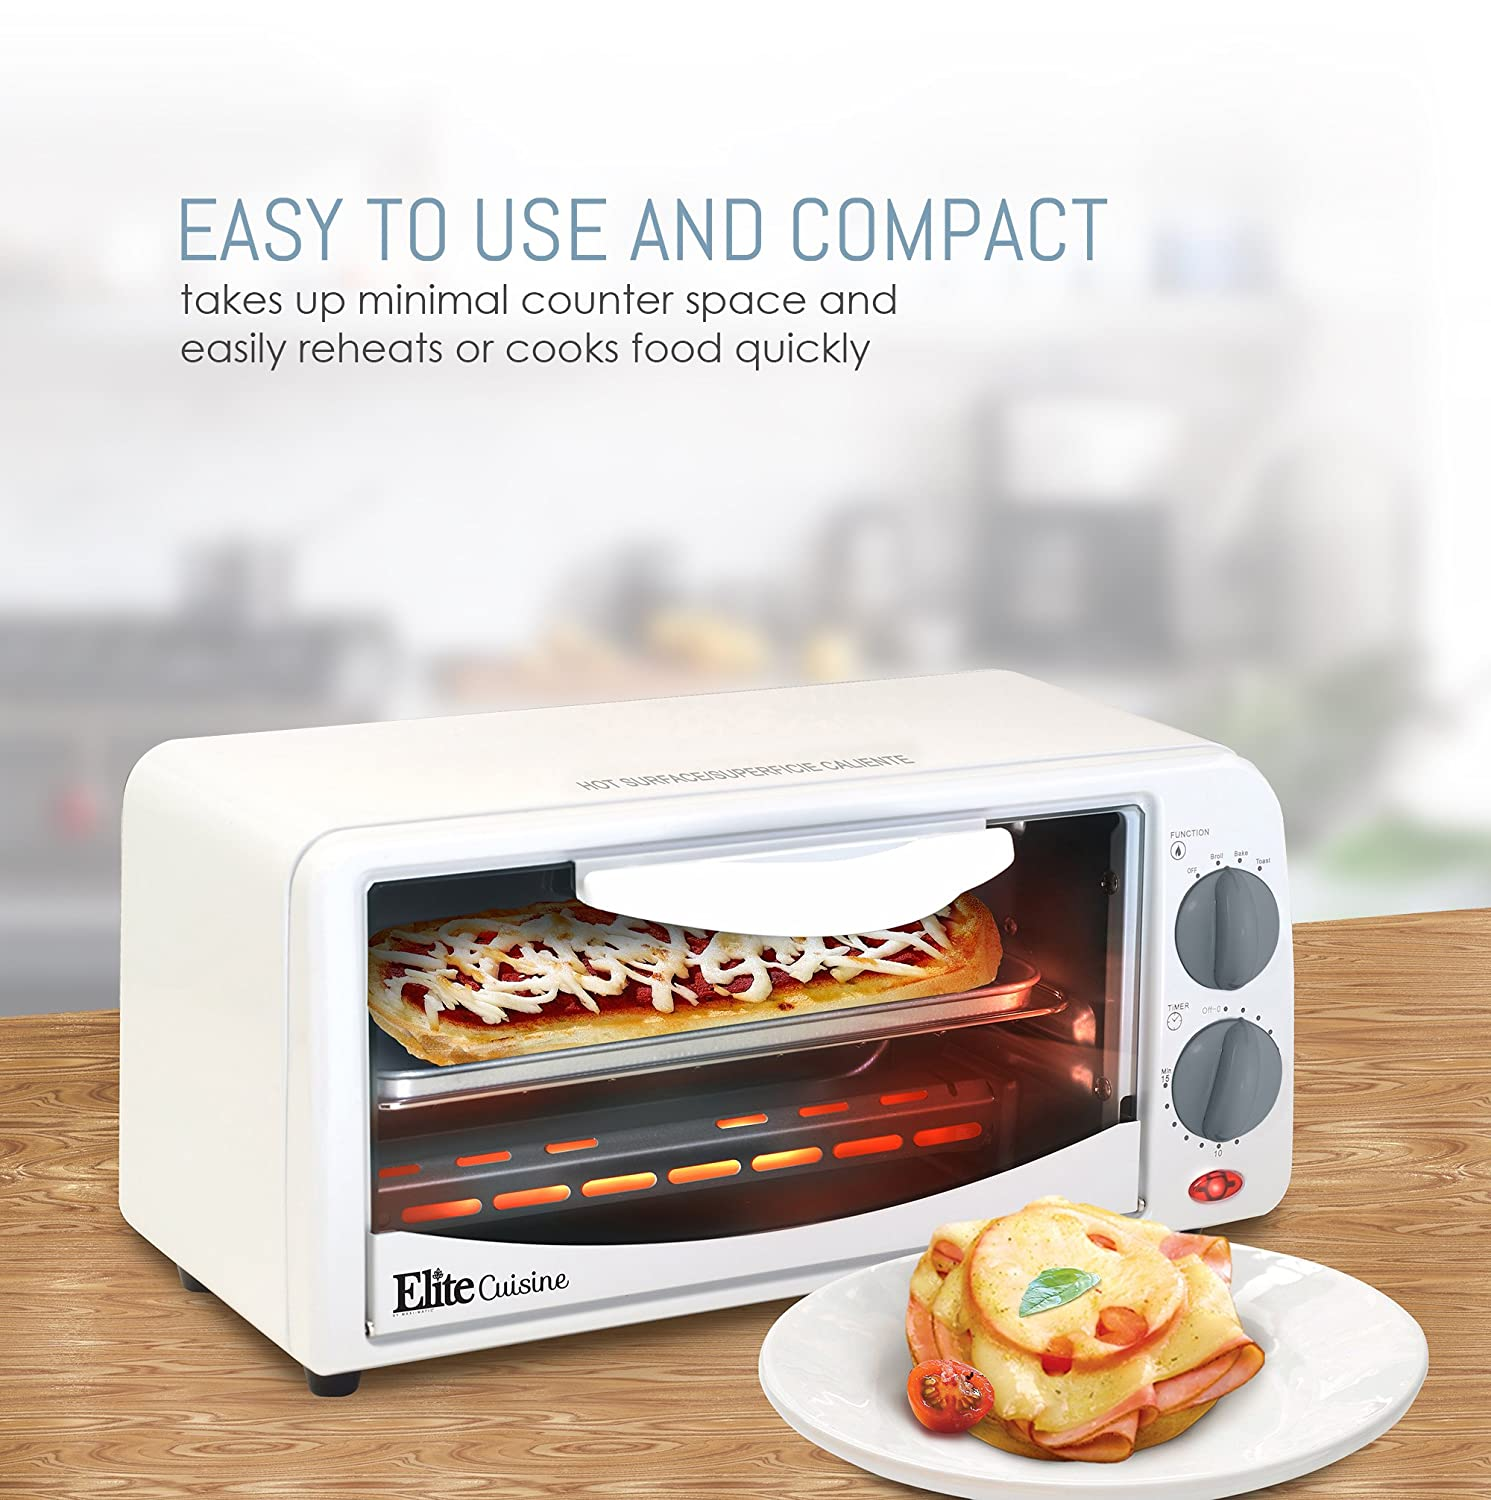 ETO 113 Elite Cuisine Maxi Matic 2 Slice Toaster Oven With 15 Minute Timer